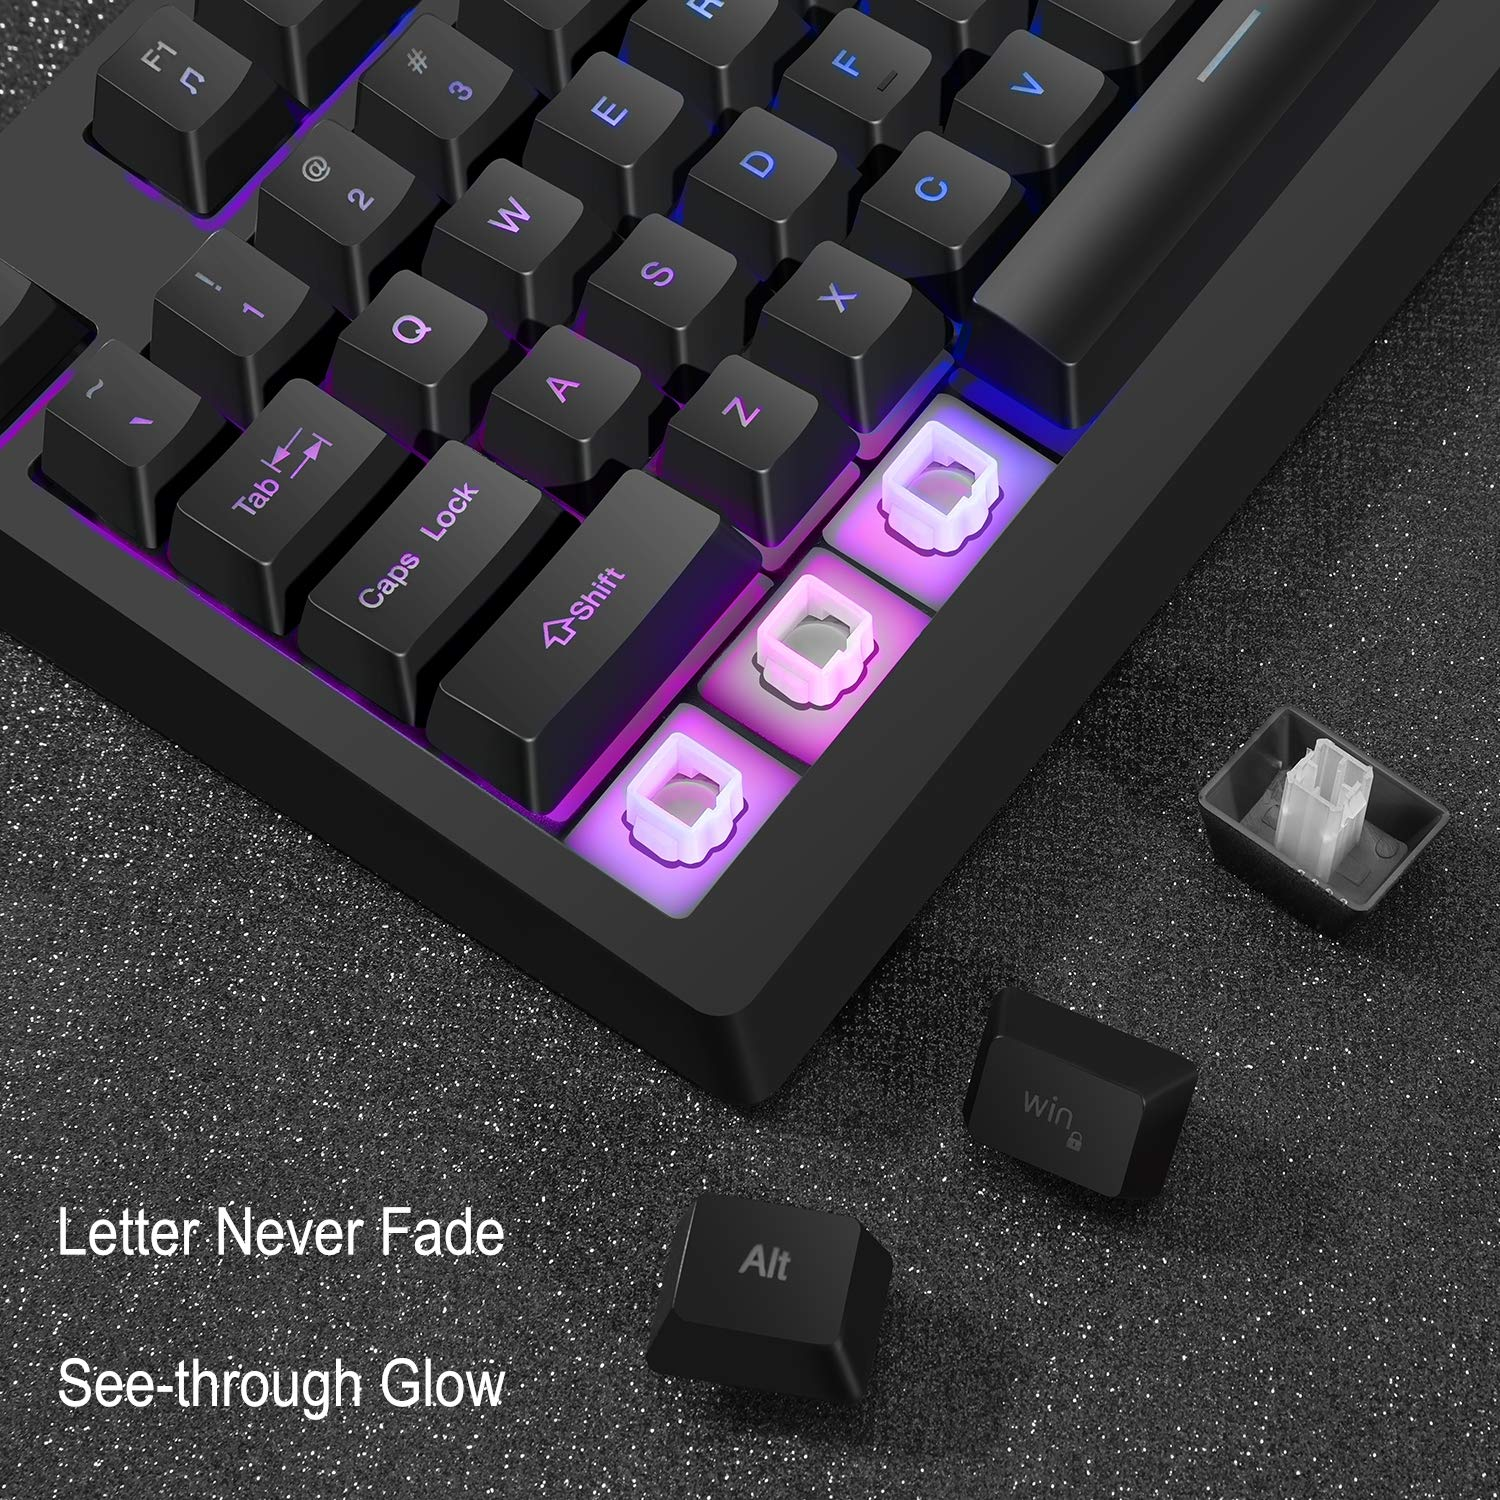 RGB 87 Keys Backlit Gaming Keyboard and Mouse Combo,USB Wired LED Backlight Gaming Mouse and Keyboard Set for Gaming PC Computer Work